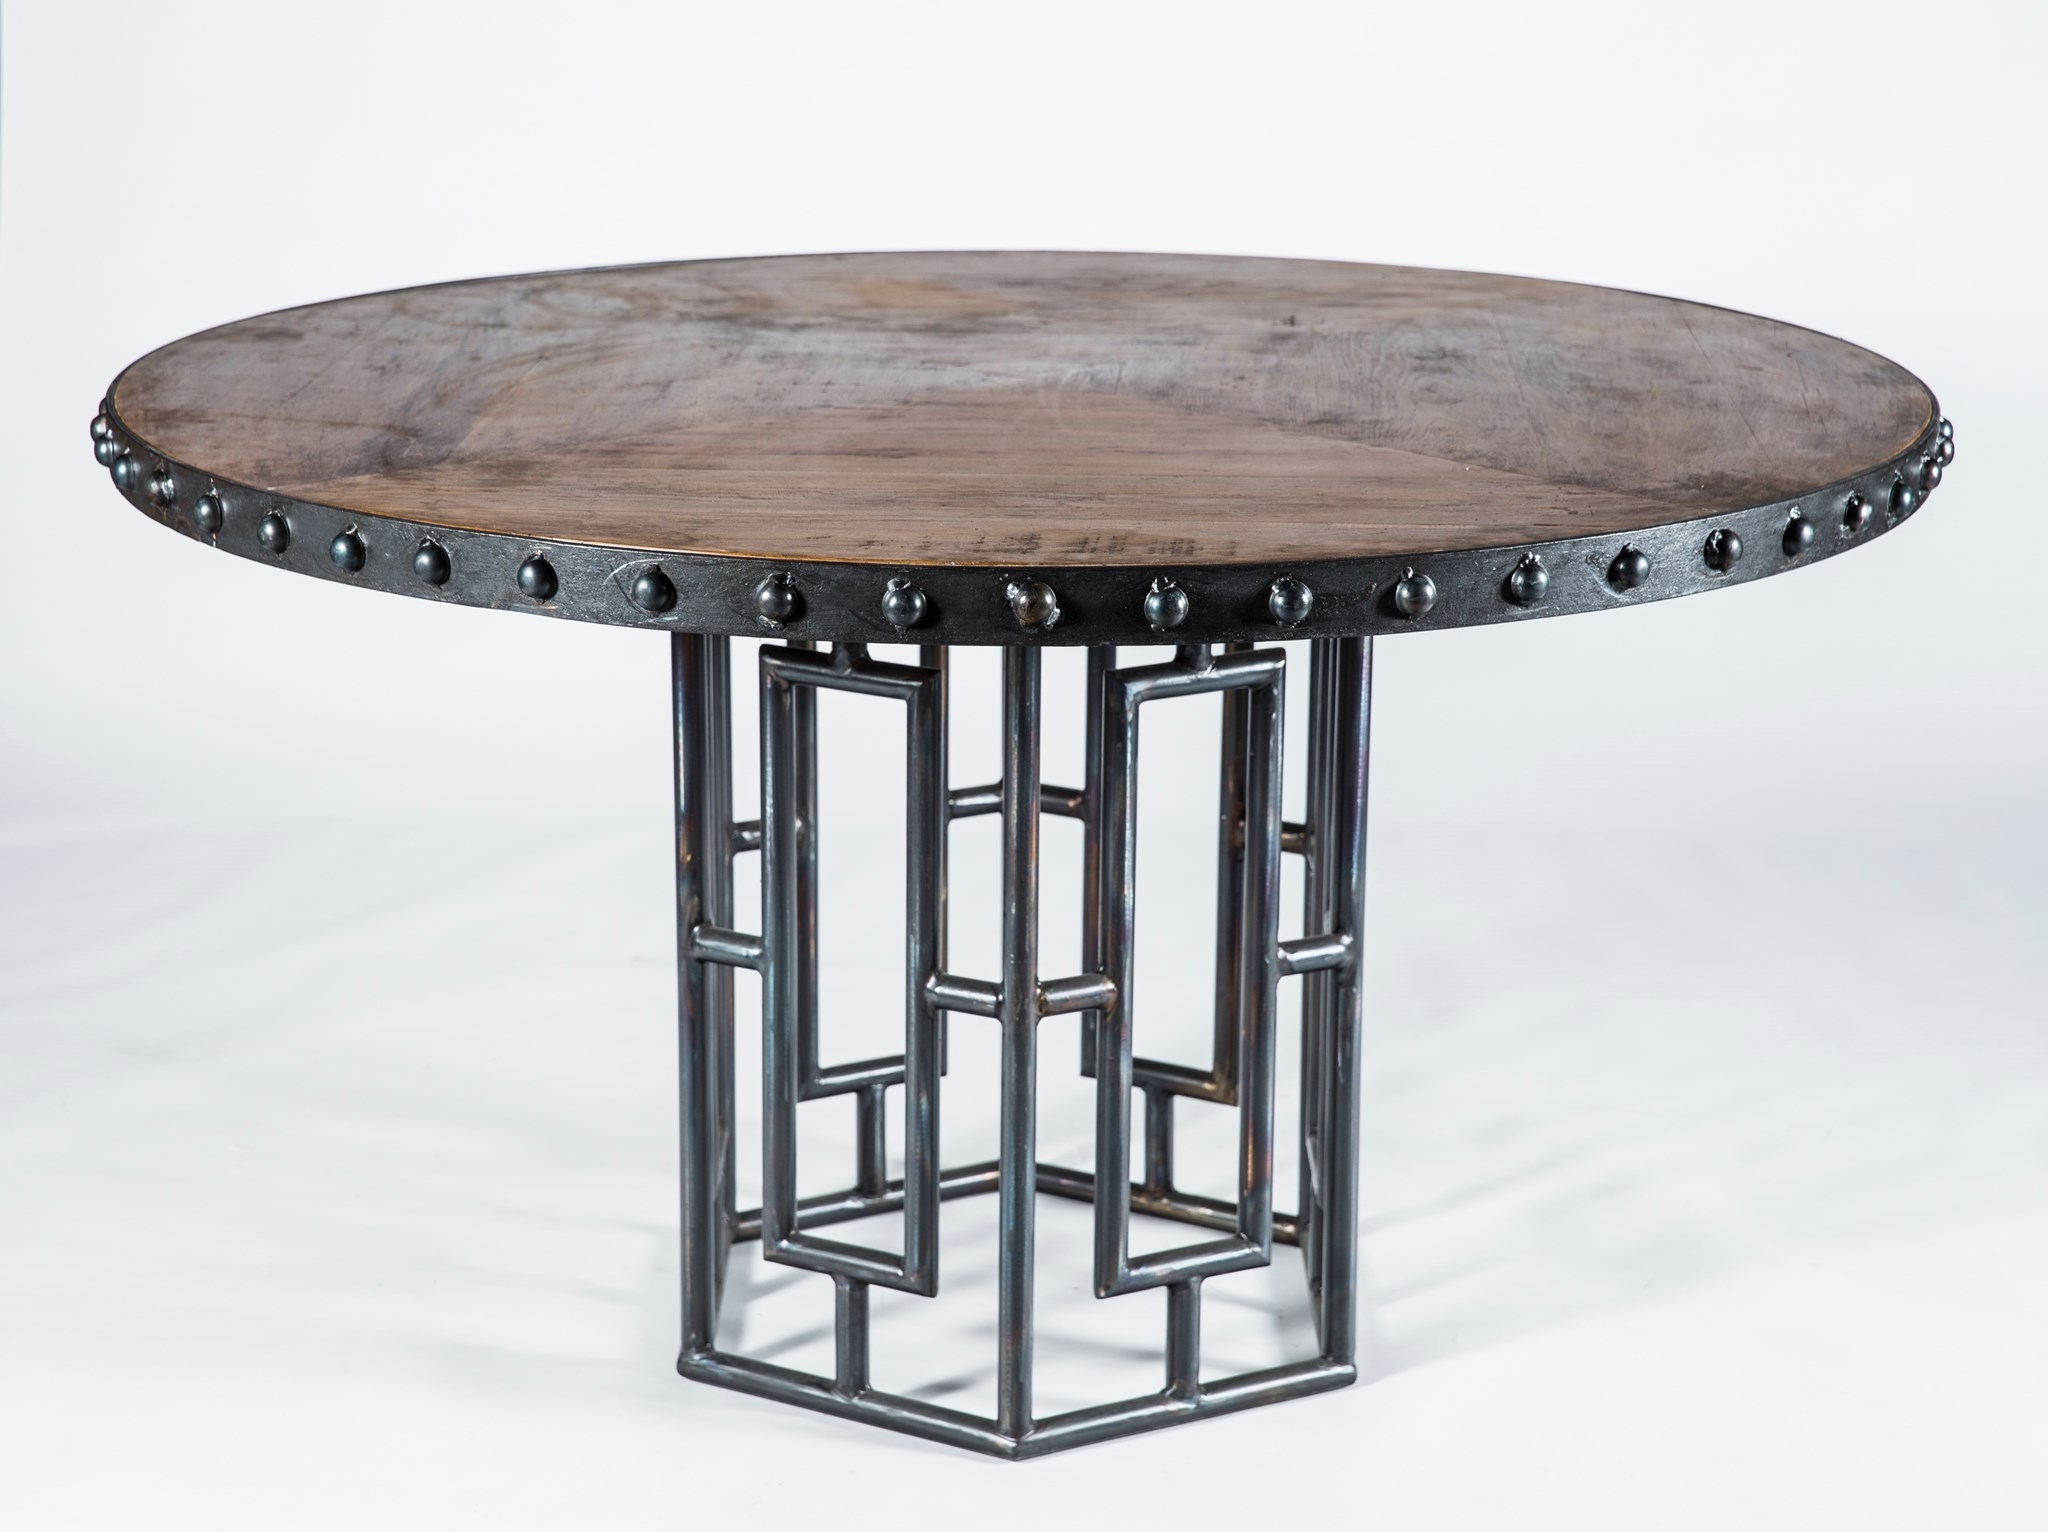 Hudson Round Dining Tables Intended For Most Up To Date Hudson Dining Table With 48 Round Wood Top With Iron Nail Head Edge (View 15 of 25)